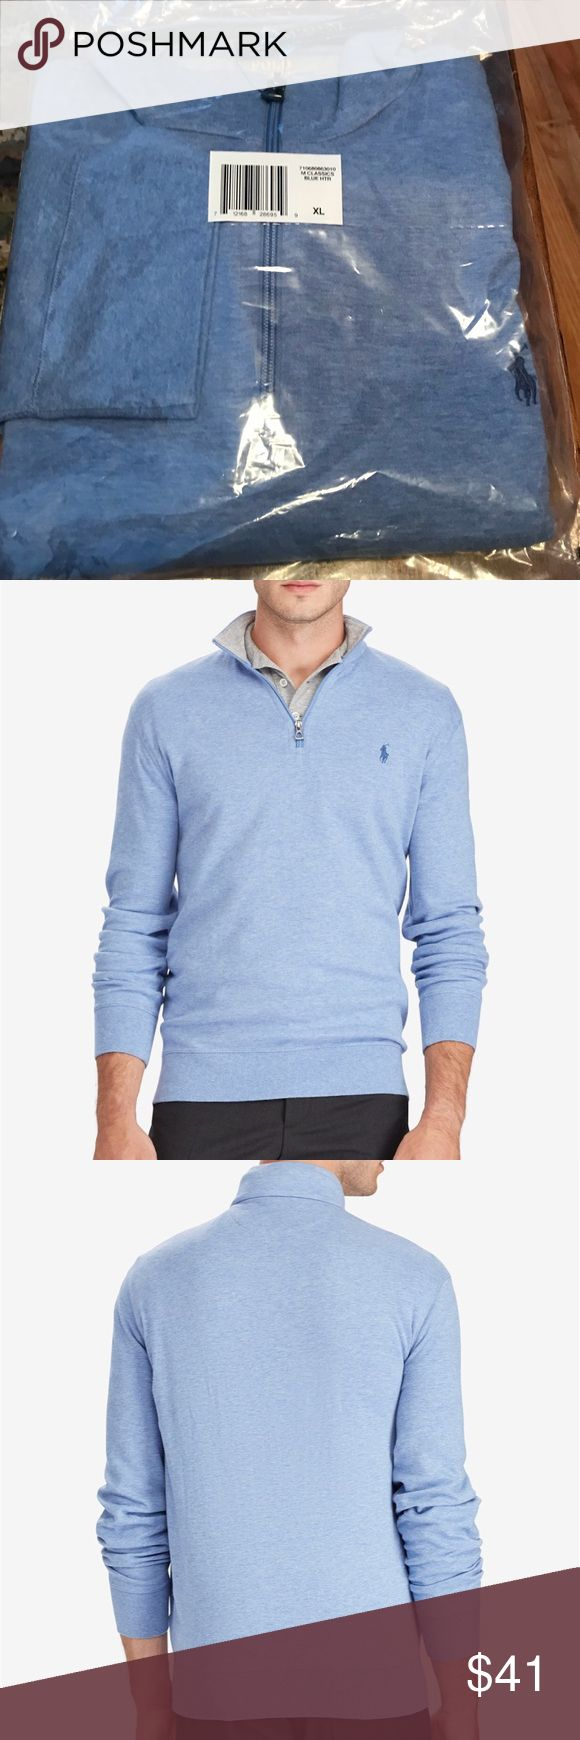 NWT Polo Ralph Lauren men's half zip sweater Brand new!! Polo Ralph Lauren men's jersey half zip sweater. Color is Campos Blue Heather. Size is XL Polo by Ralph Lauren Sweaters